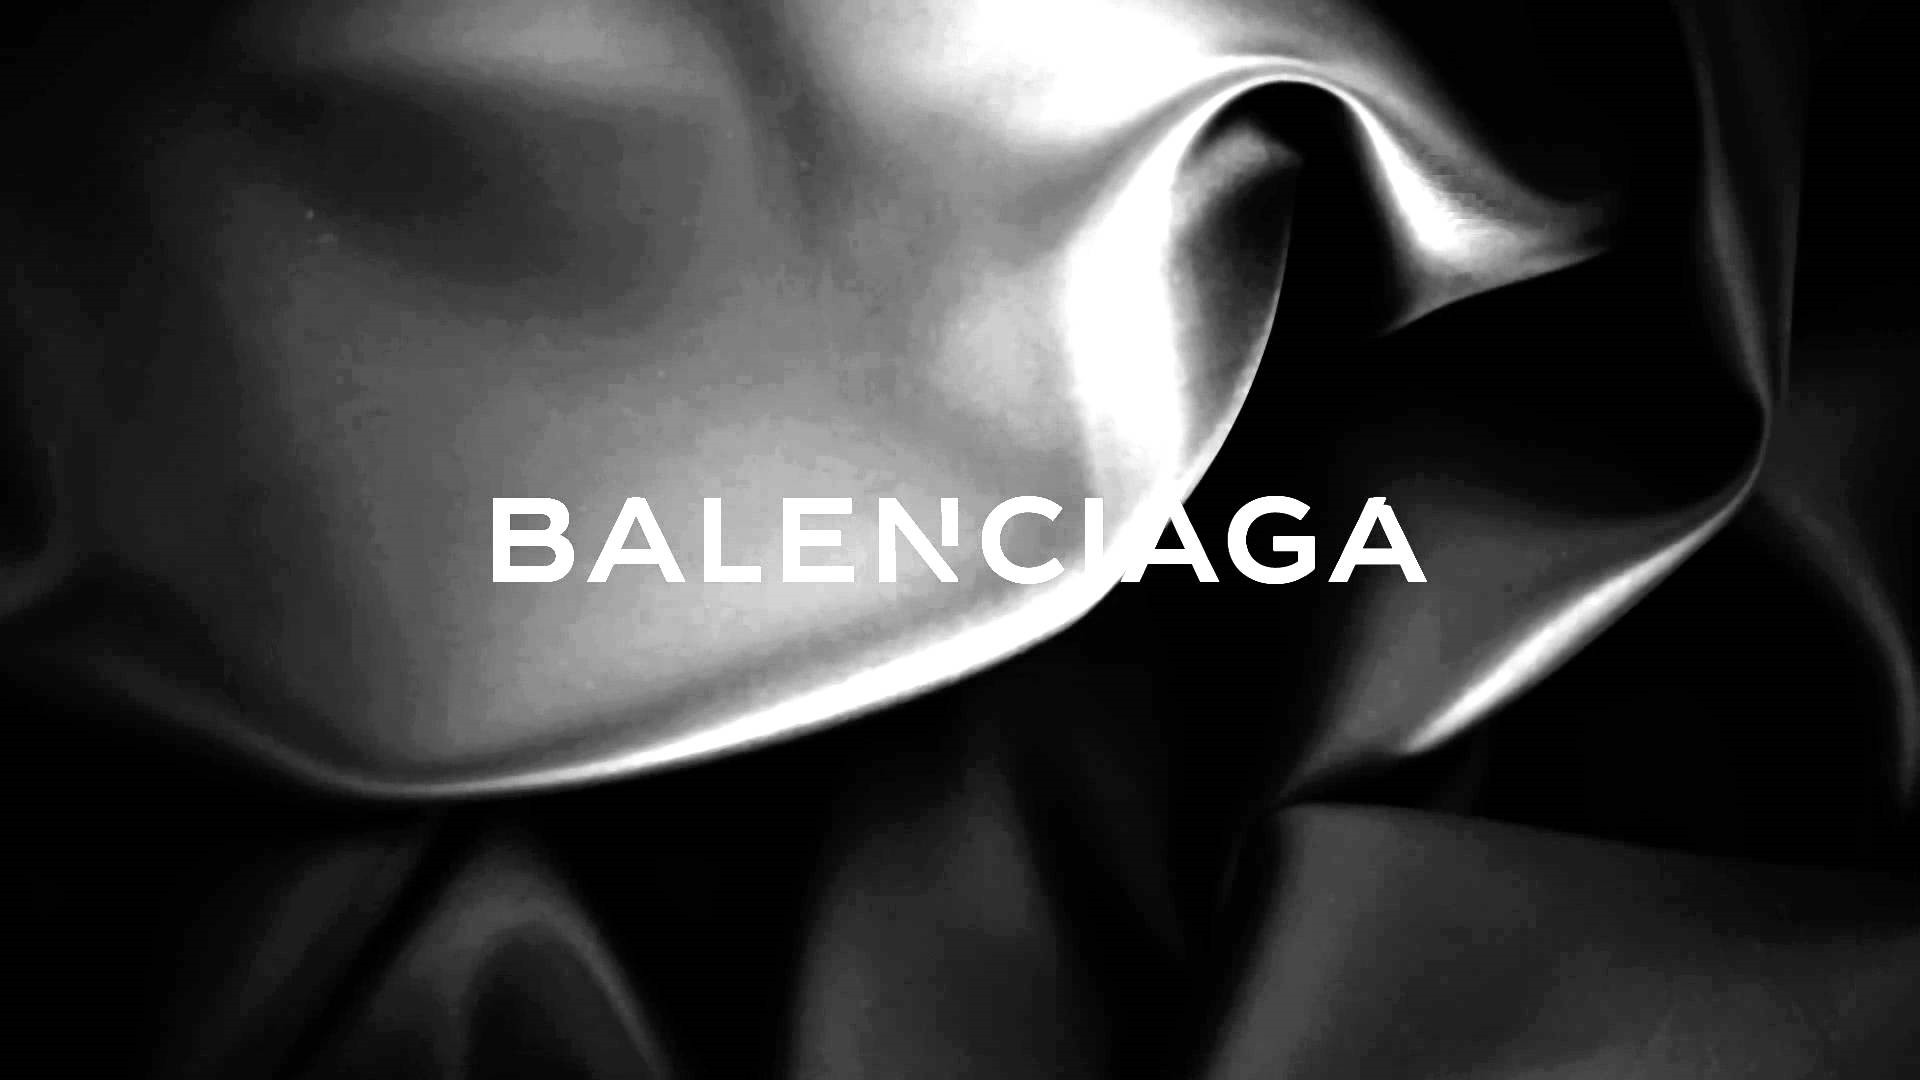 Balenciaga Wallpaper Picture hd